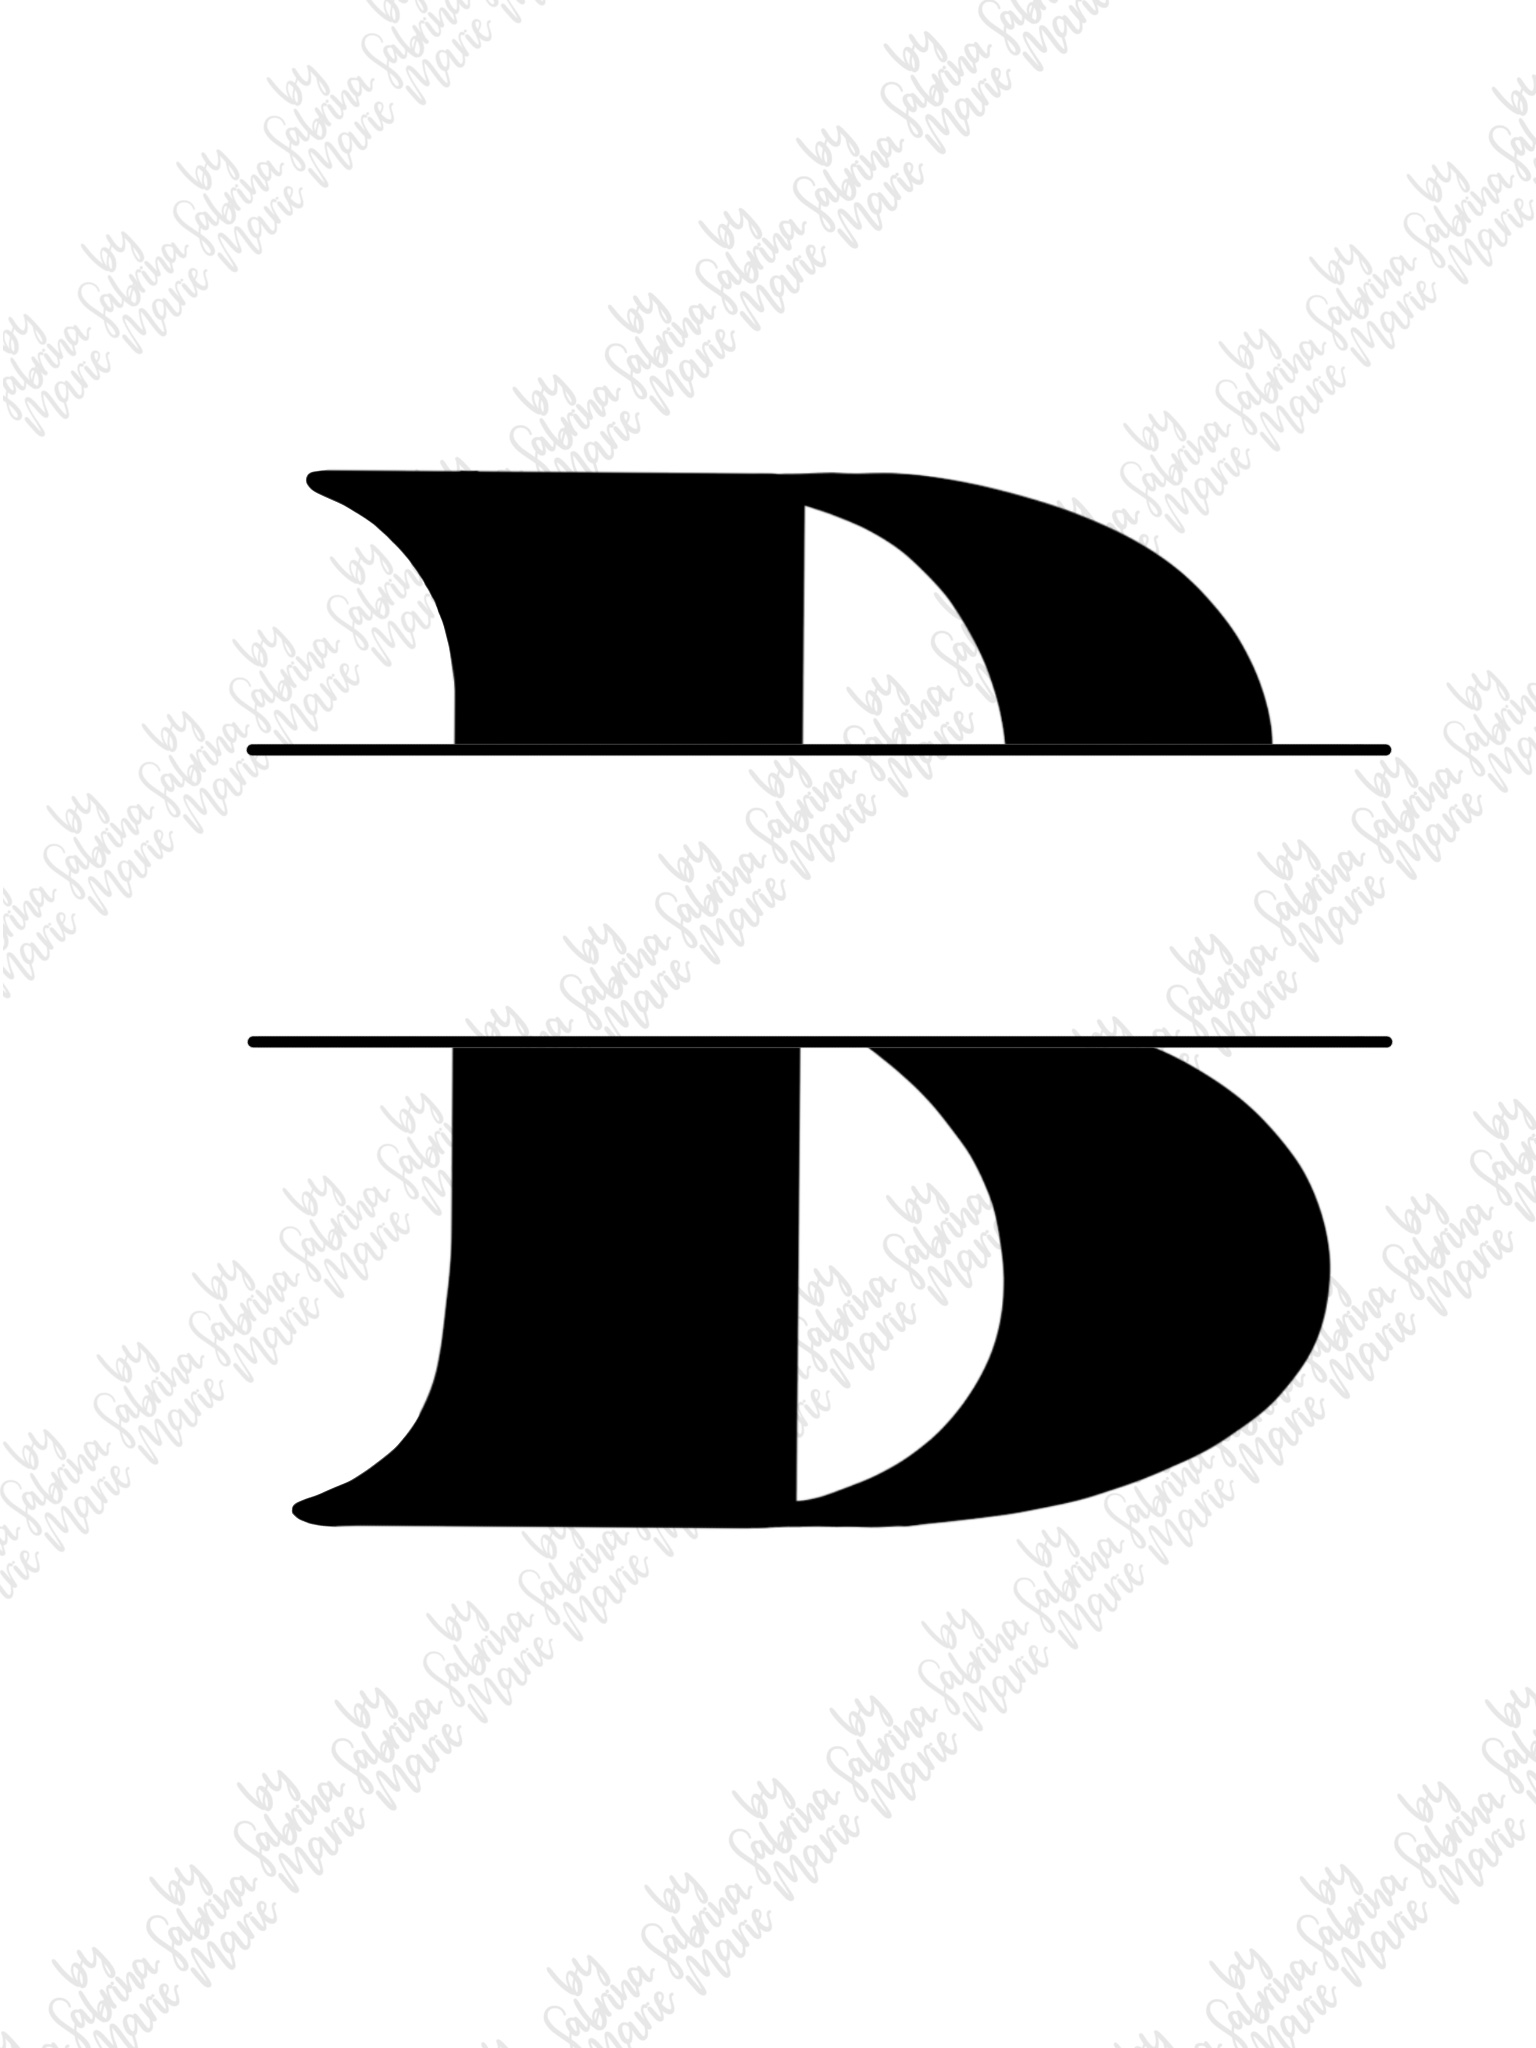 Split Monogram B - Handdrawn - SVG/PNG example image 2